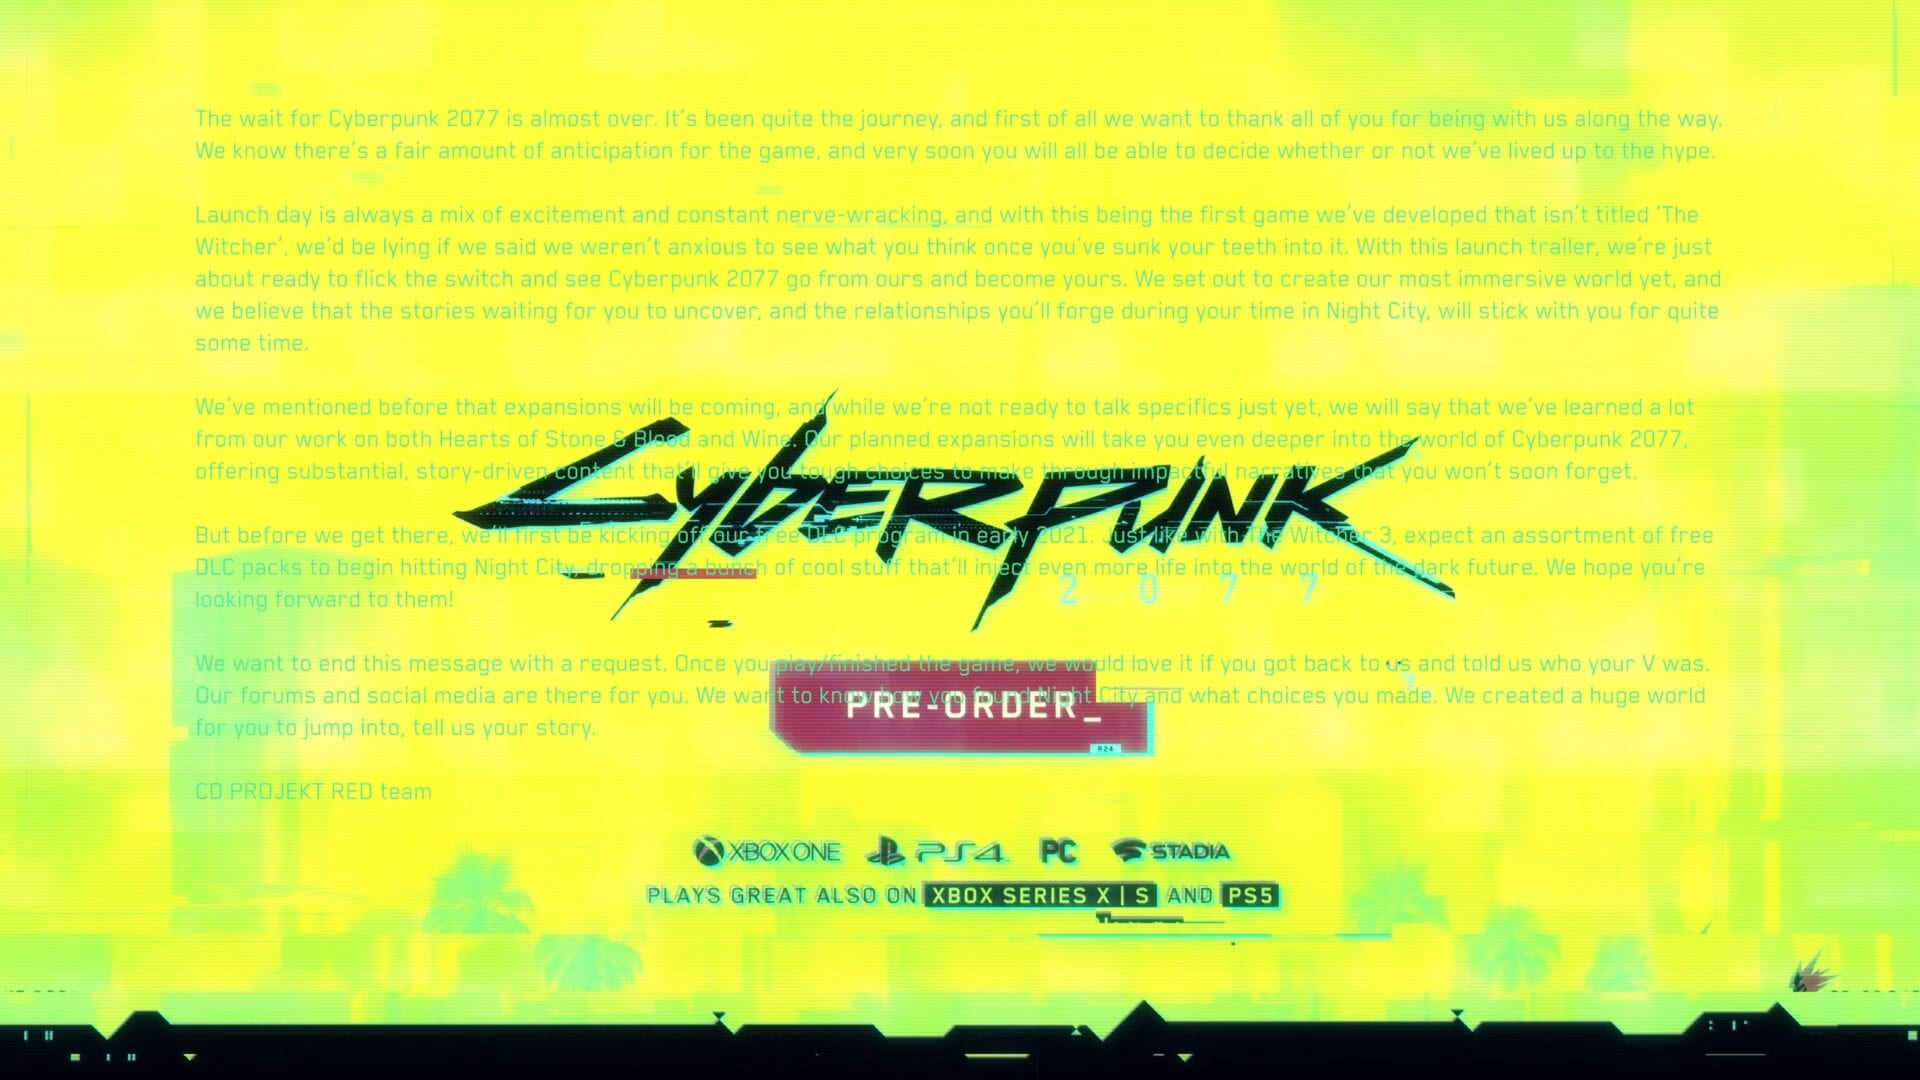 """Cyberpunk 2077 Teases Free DLC & """"Substantial, Story-Pushed Expansions"""" With Secret Message in Trailer 1"""